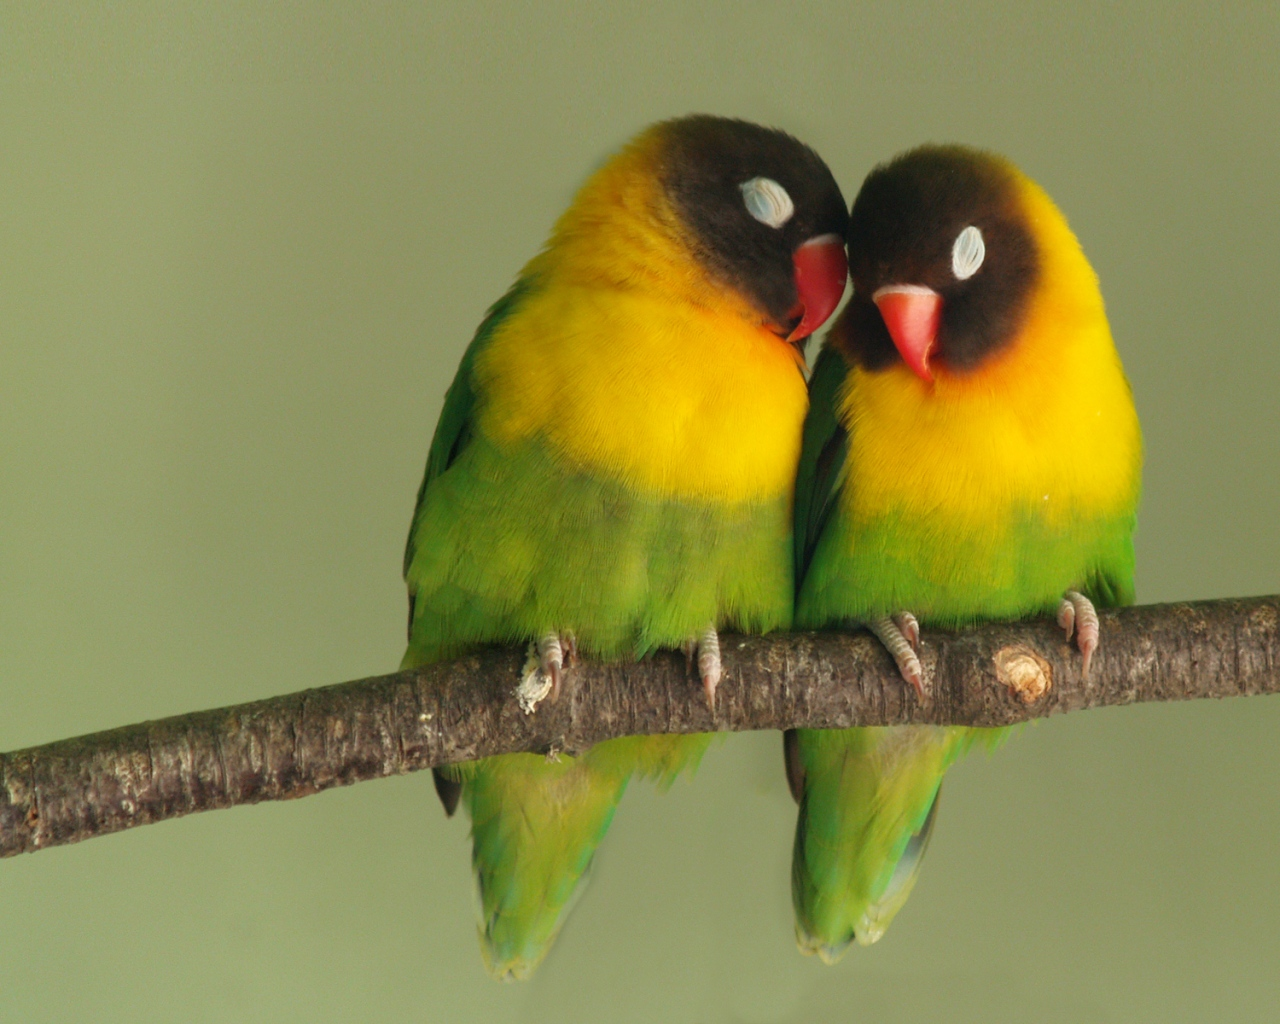 twolovebirds